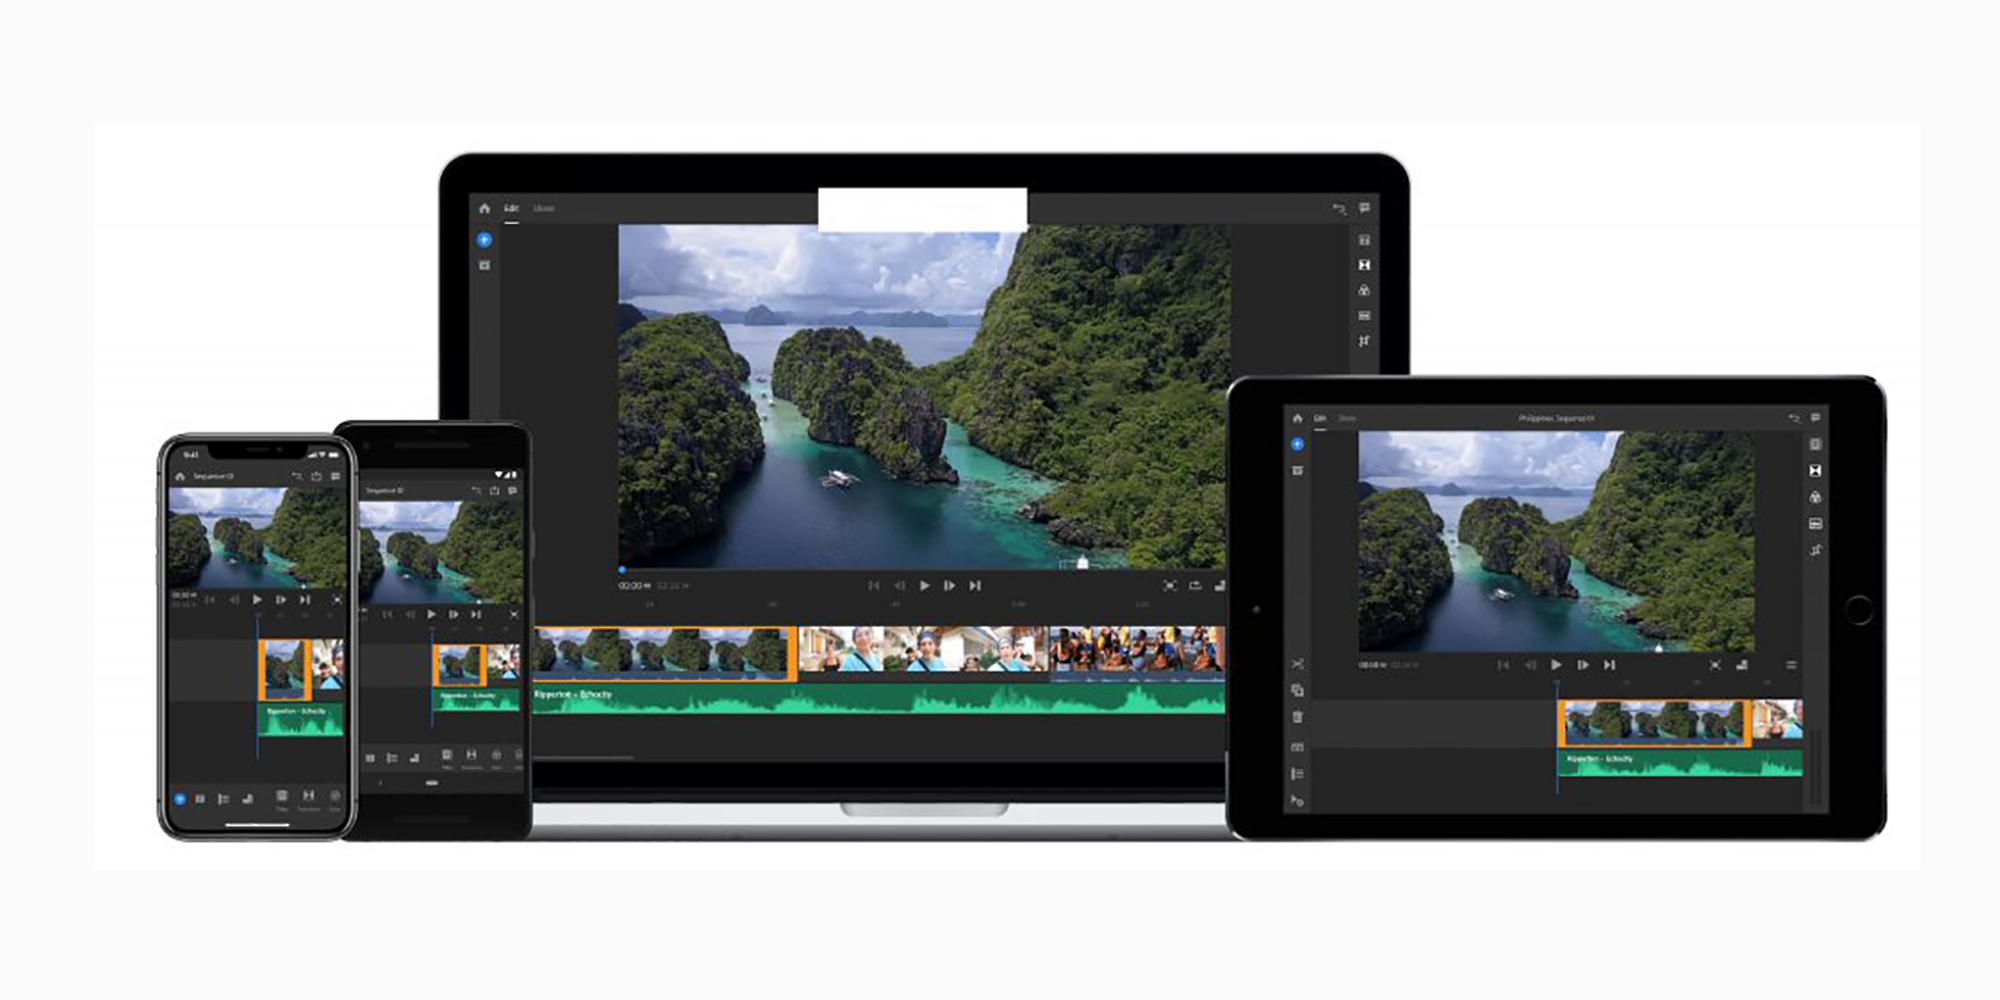 adobe premiere rush cc launches on android in 2019 youtube centric video editing app